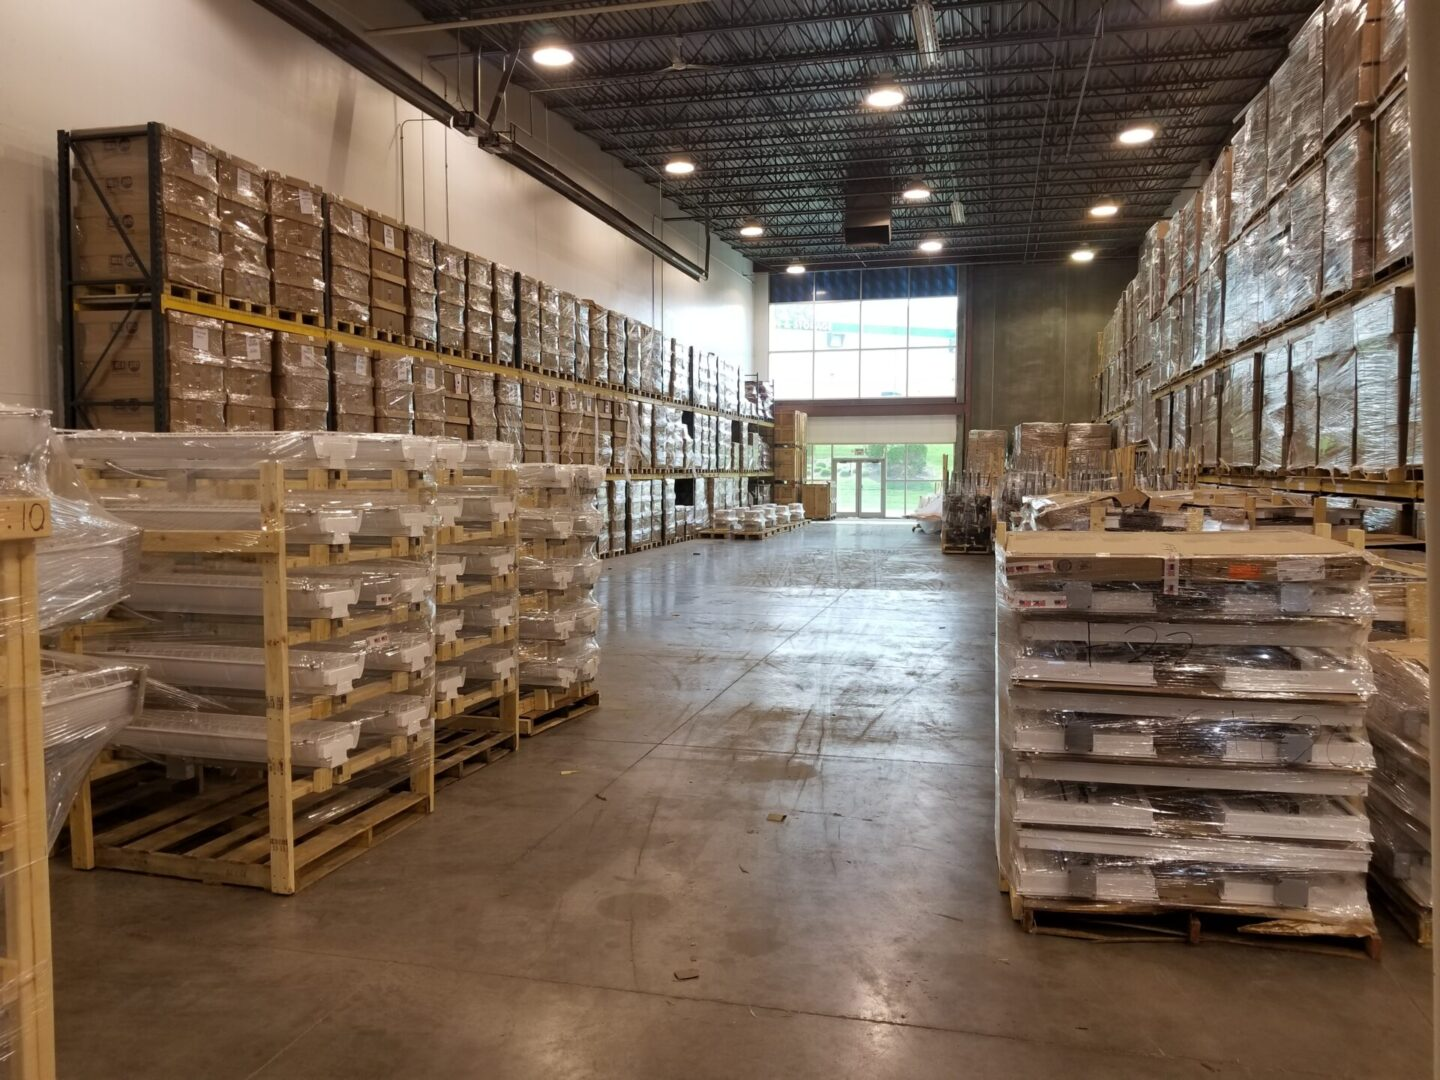 Warehouse of Midwest Prefabrication Inc